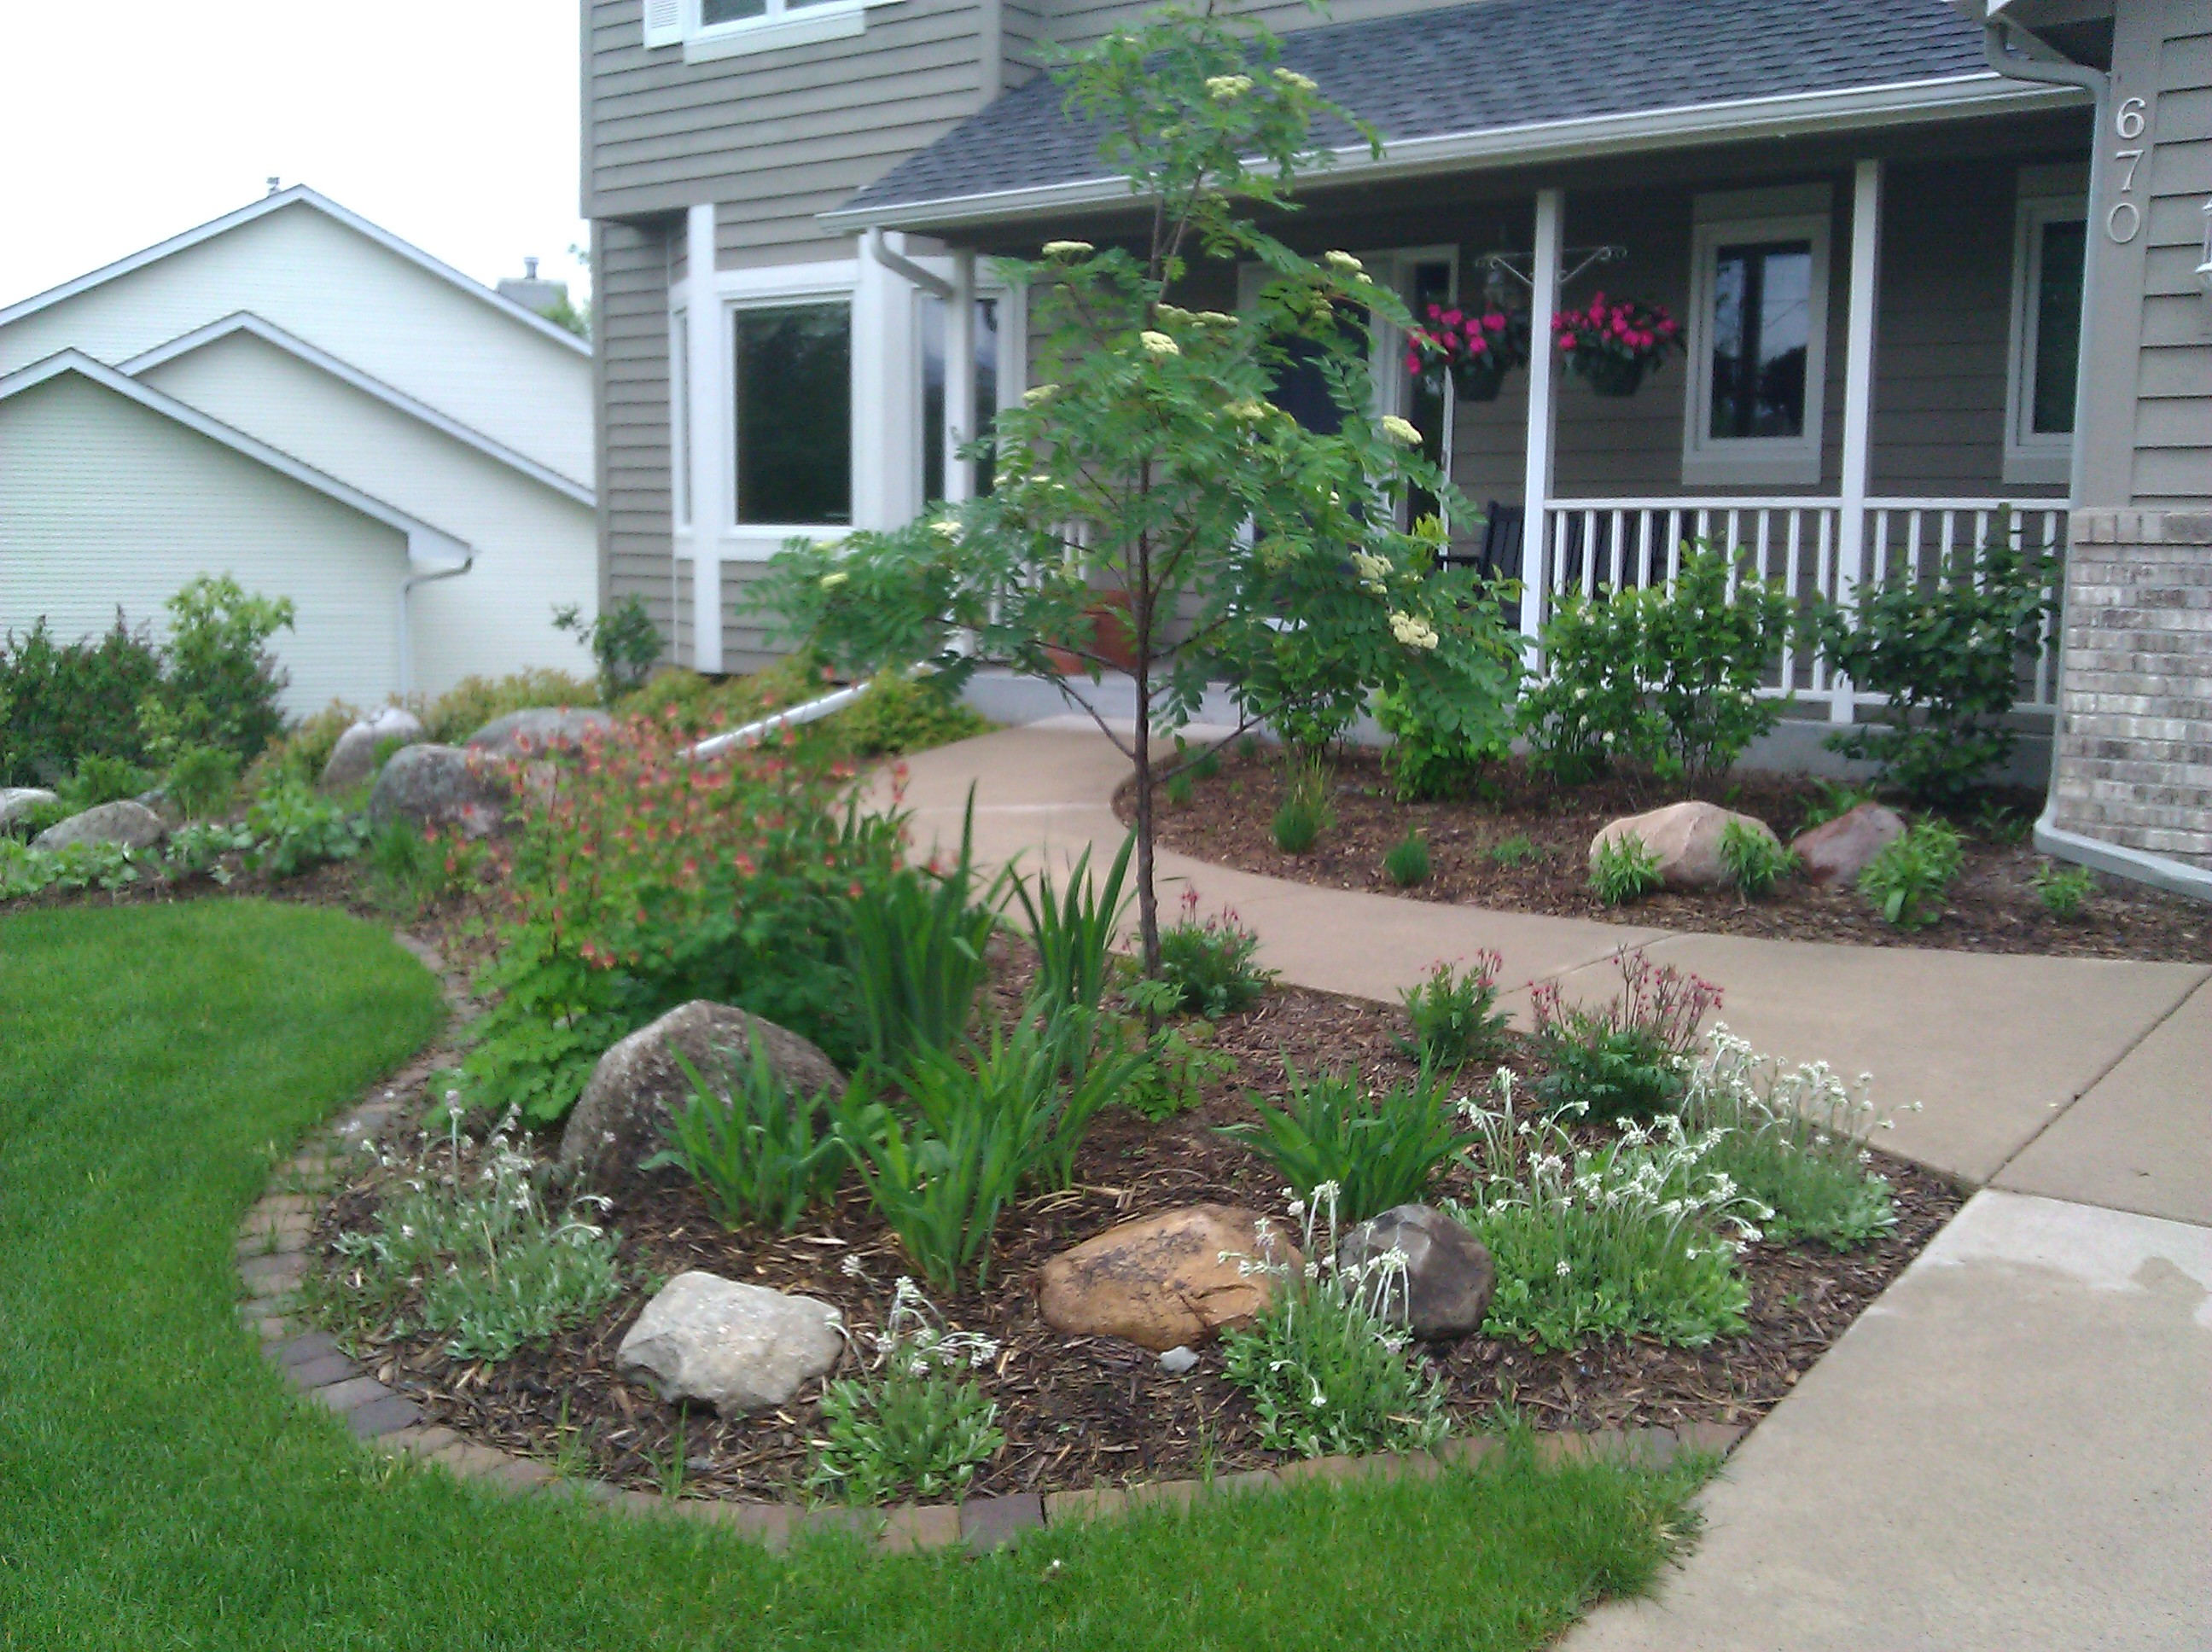 ecoscapes ecoscapes sustainable landscaping - Vegetable Garden Ideas Minnesota